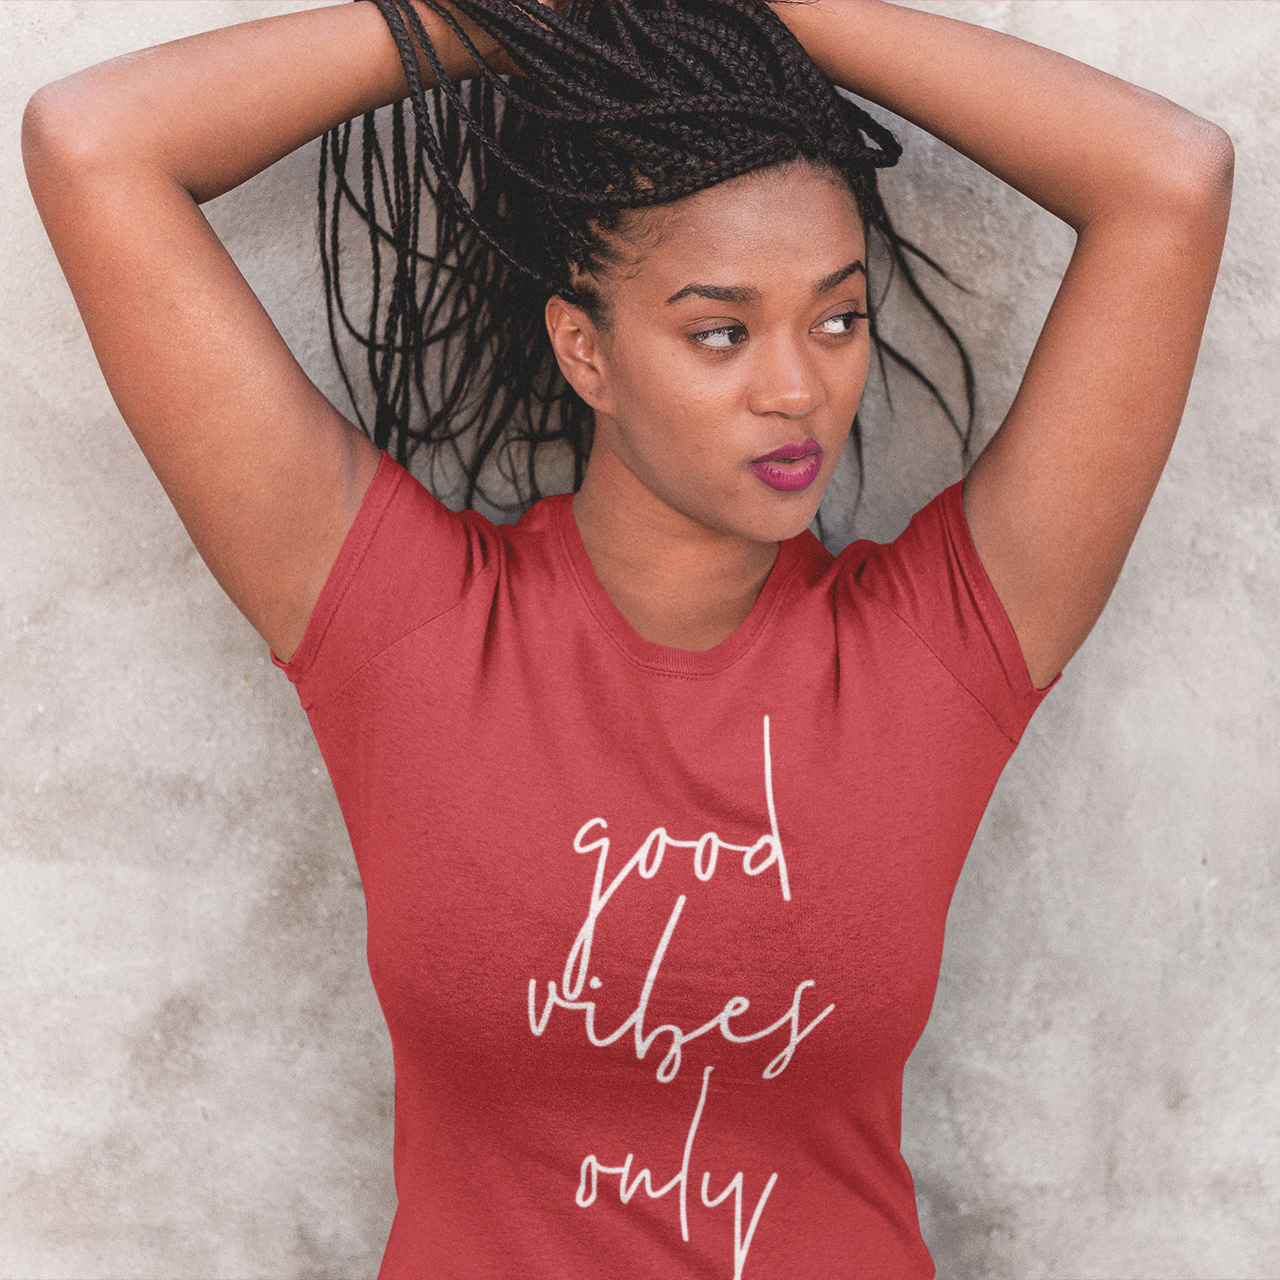 'Good vibes only' adult shirt